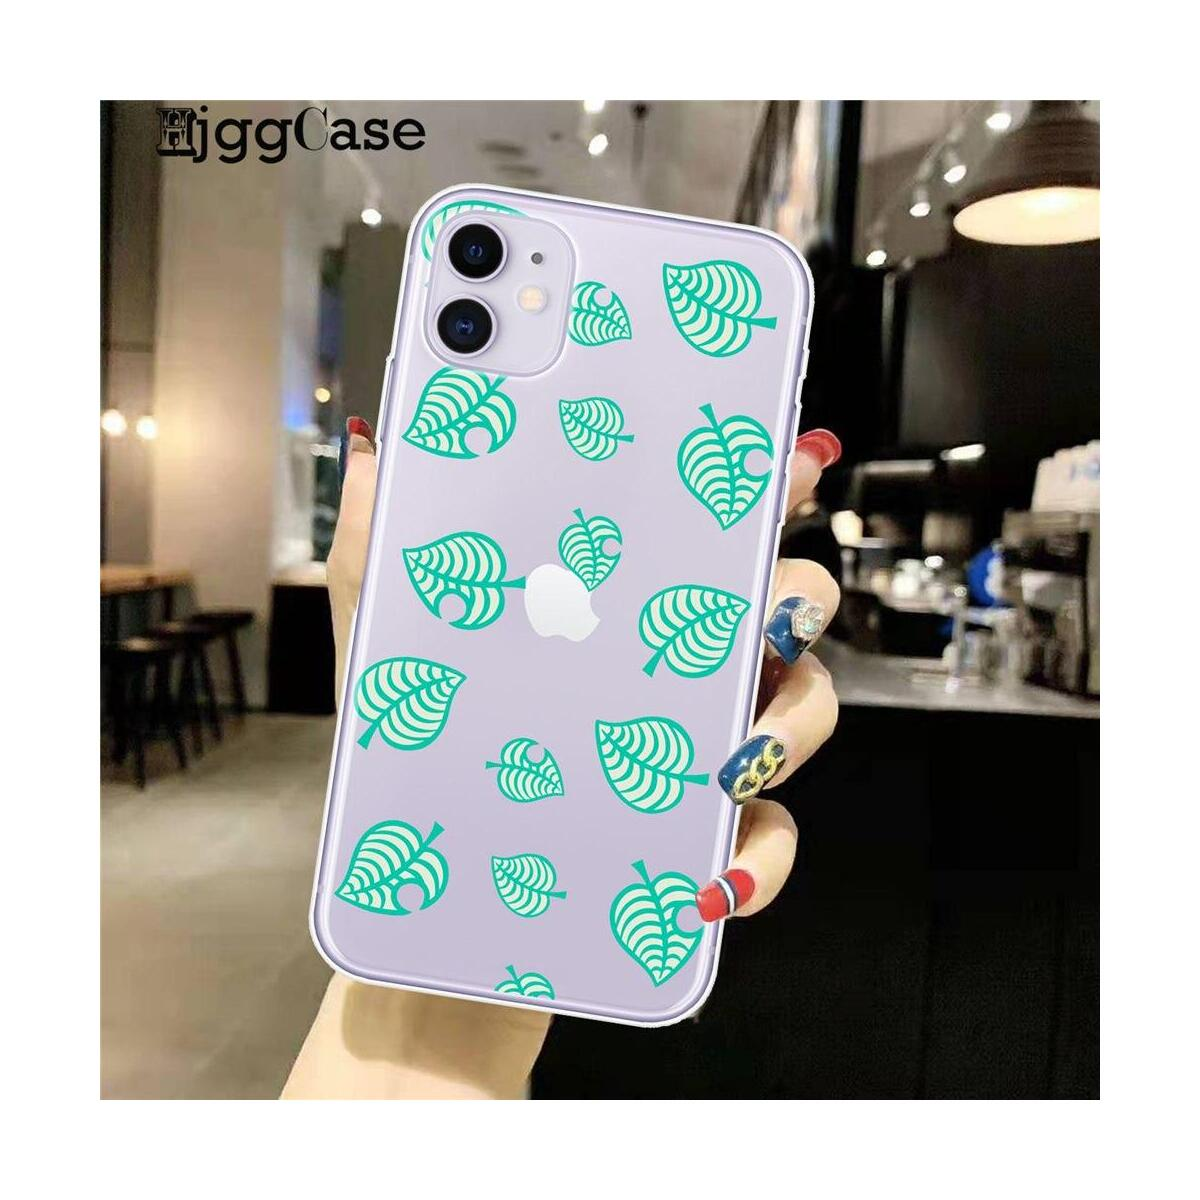 Animal Crossing New Horizons Silicone Phone Cases For iPhone, For iPhone 11Pro Max / D1023